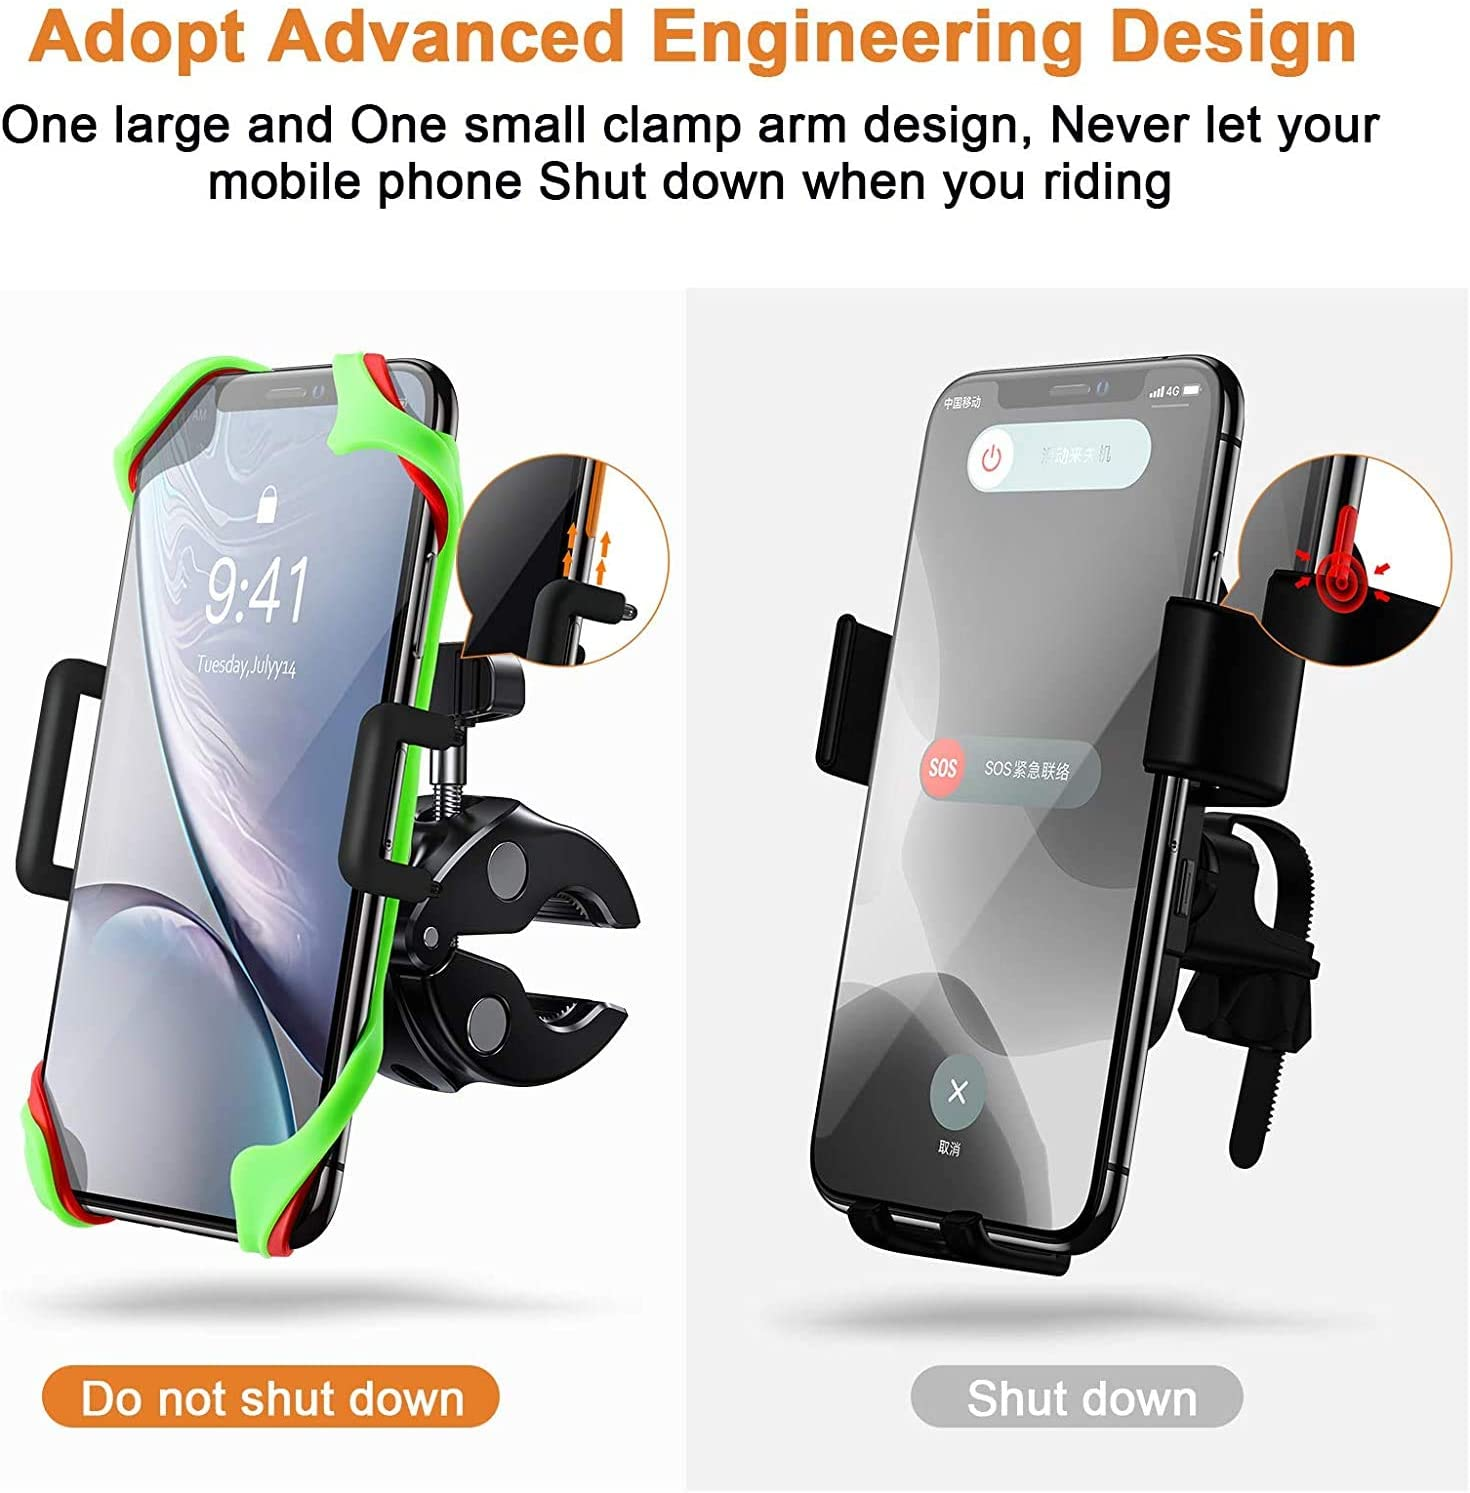 joyroom Bike Phone Mount with 360 Rotation Samsung S20//S20 Plus Gray Compatible with iPhone 11 Pro Max//11 Pro//XS Max//XR//8 Anti-Shake Adjustable Bicycle Phone Holder for Universal Handlebar